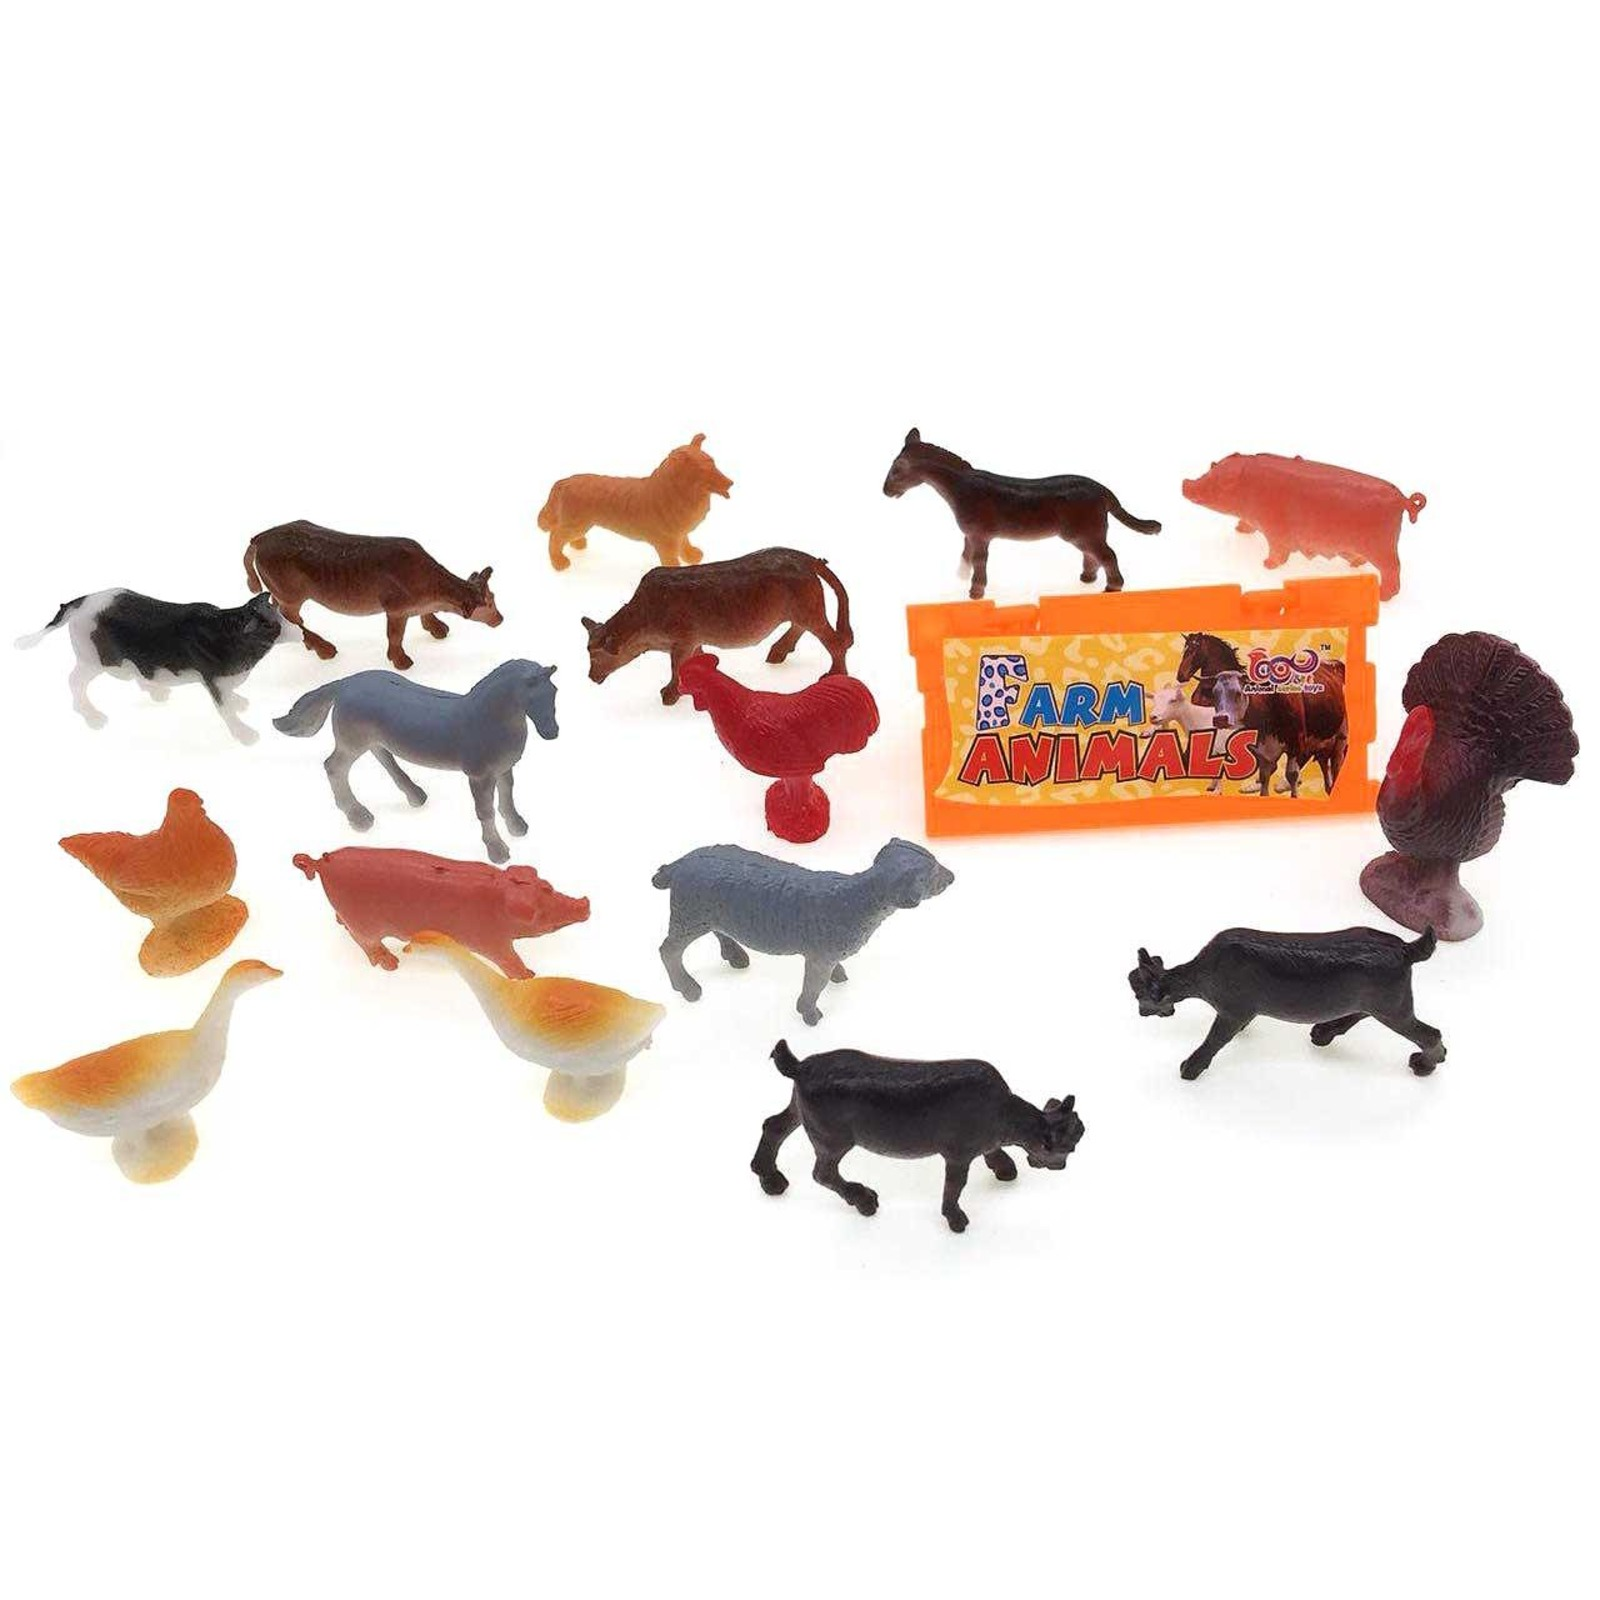 MTRADE Mini Farm Animals Toy Set